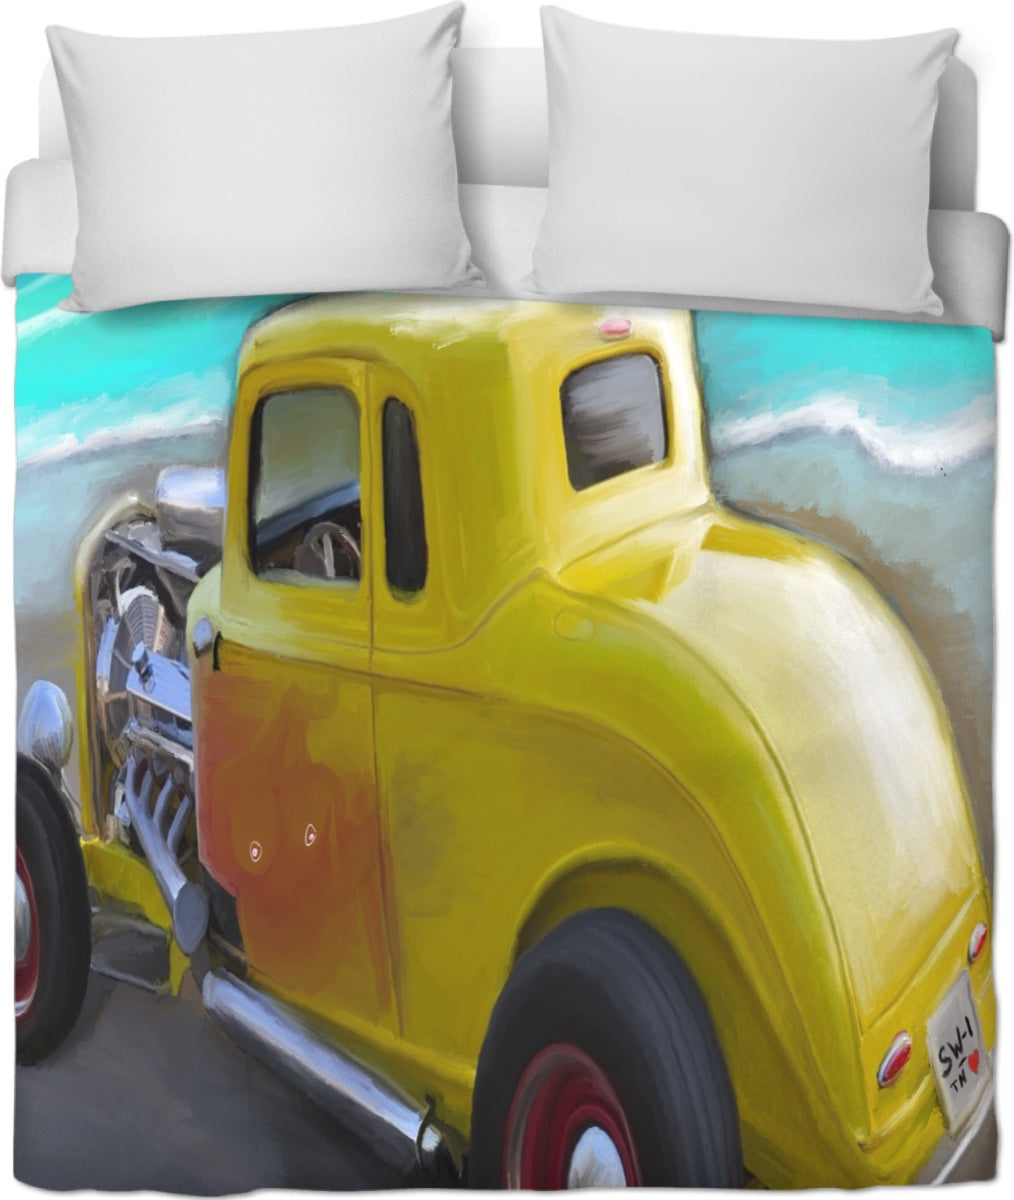 Duvet cover Yellow Classic